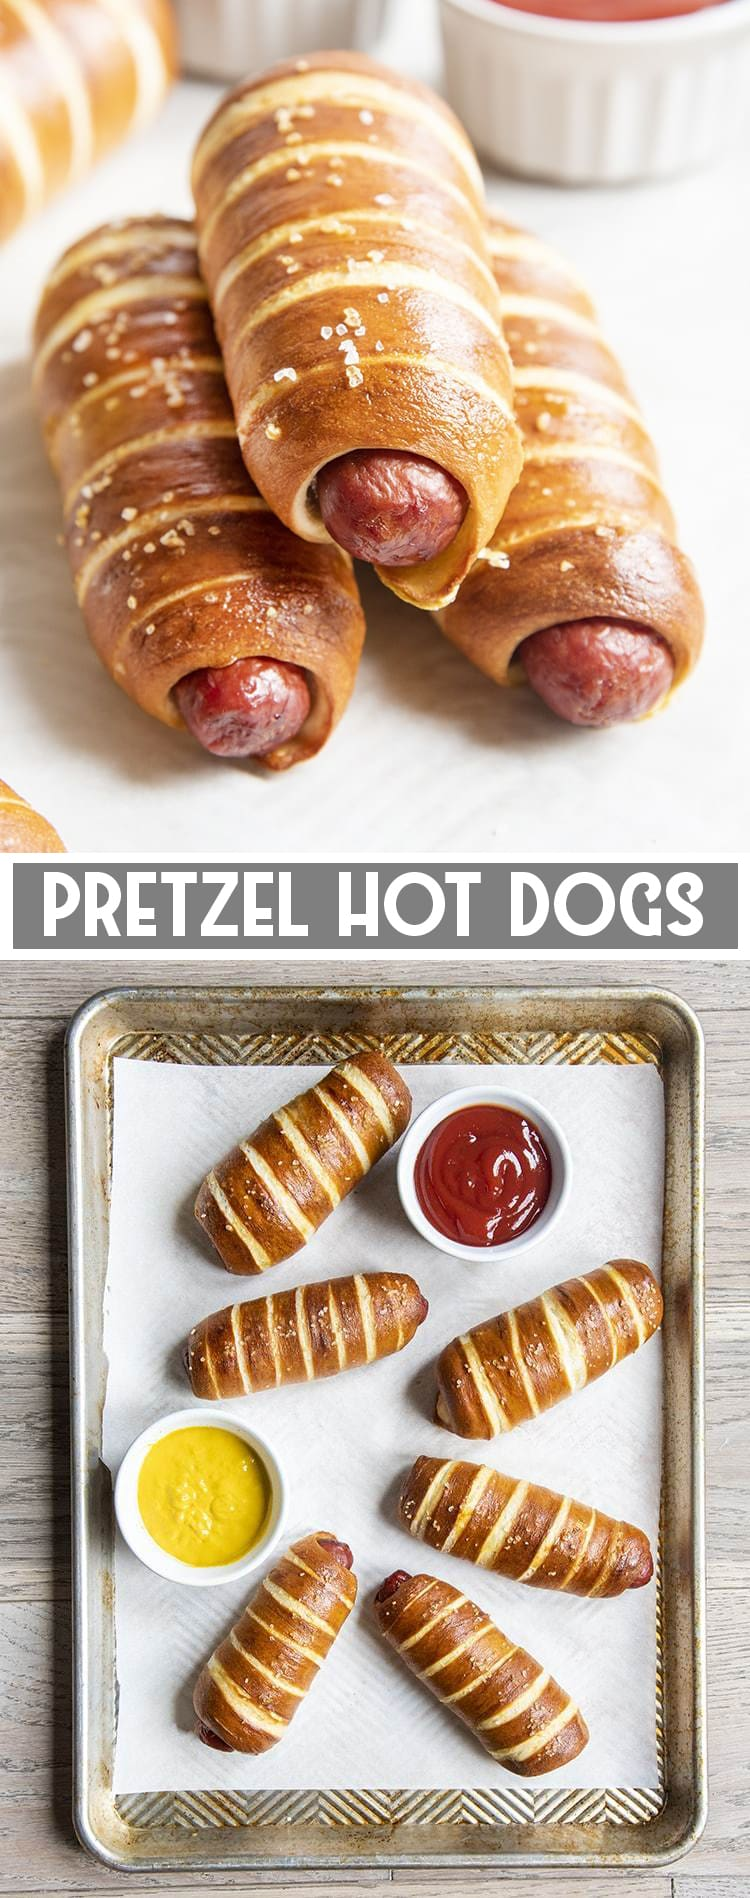 Hot dogs wrapped in pretzel bread on a tray with text overlay for pinterest